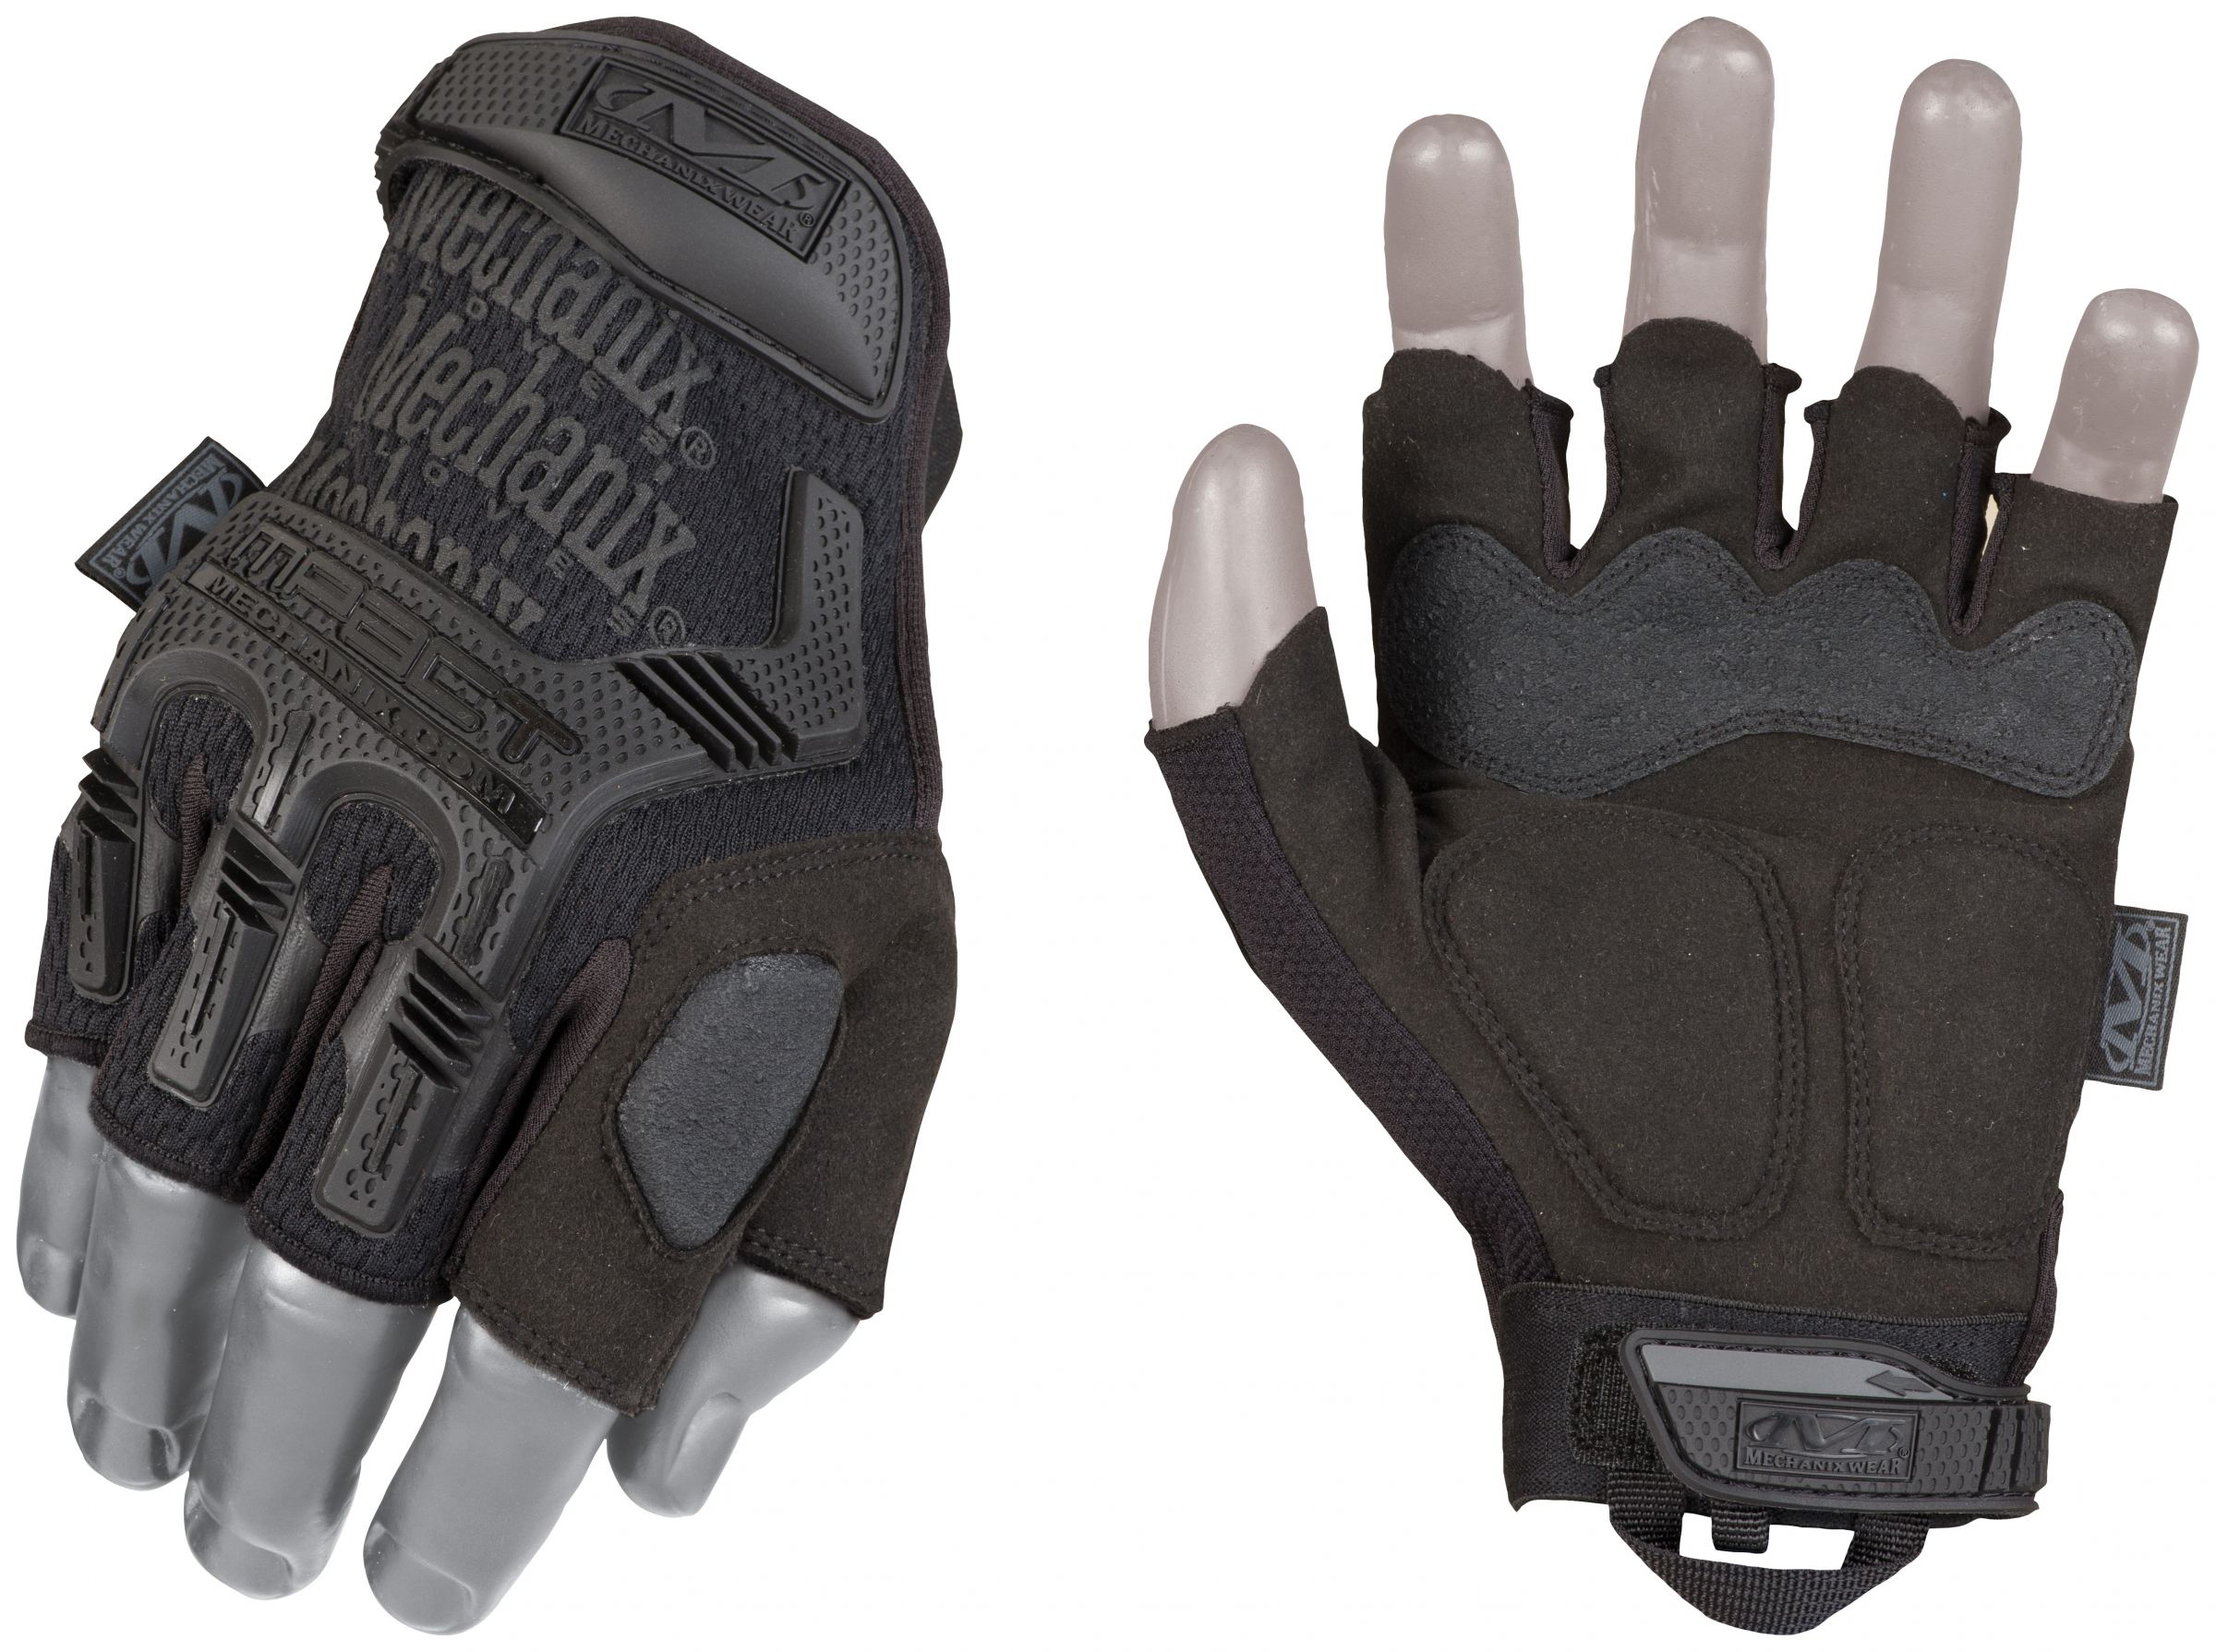 M-Pact_Fingerless_Tactical_Gloves